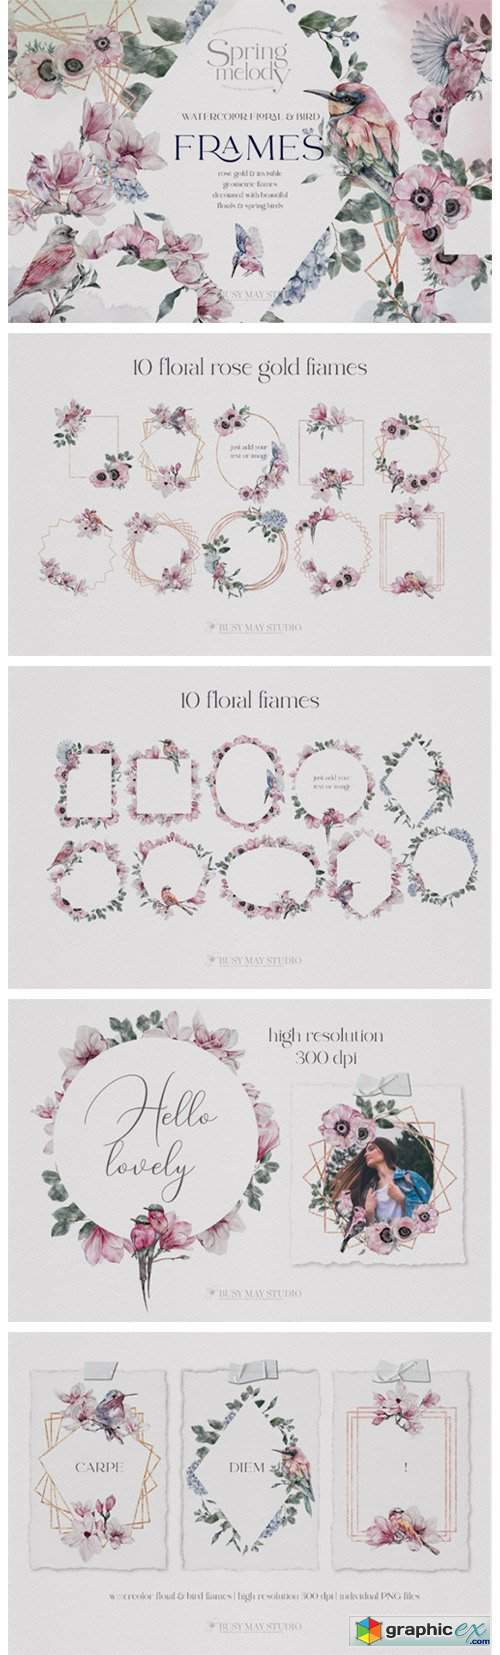 Watercolor Floral Rose Gold Frames PNG